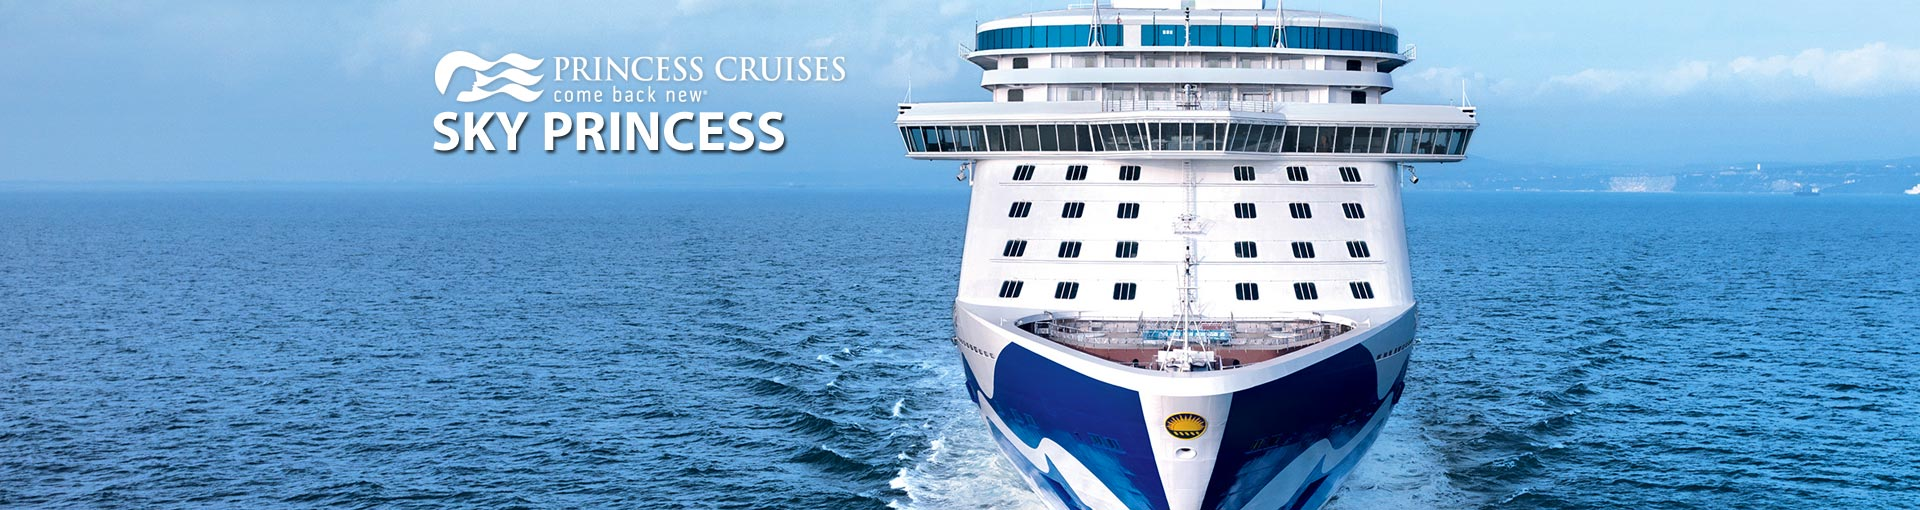 Princess Cruises Sky Princess